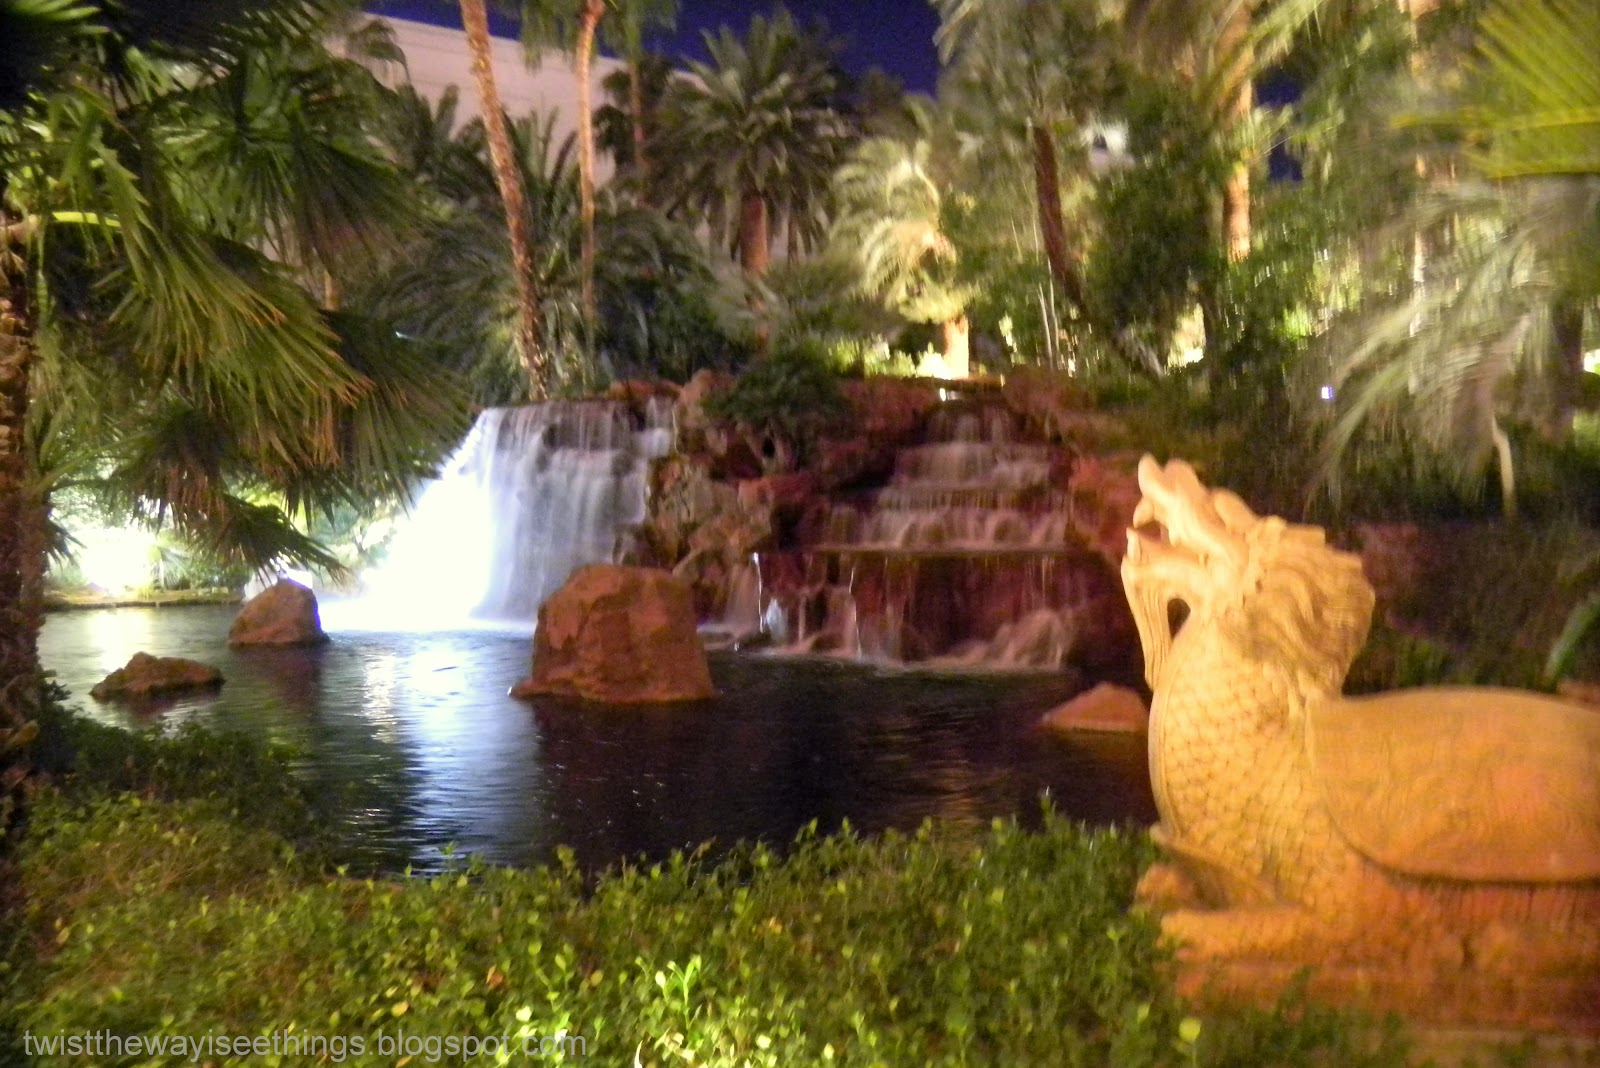 PHOTOS: The Mirage hotel & casino | TWIST (The Way I See Things)